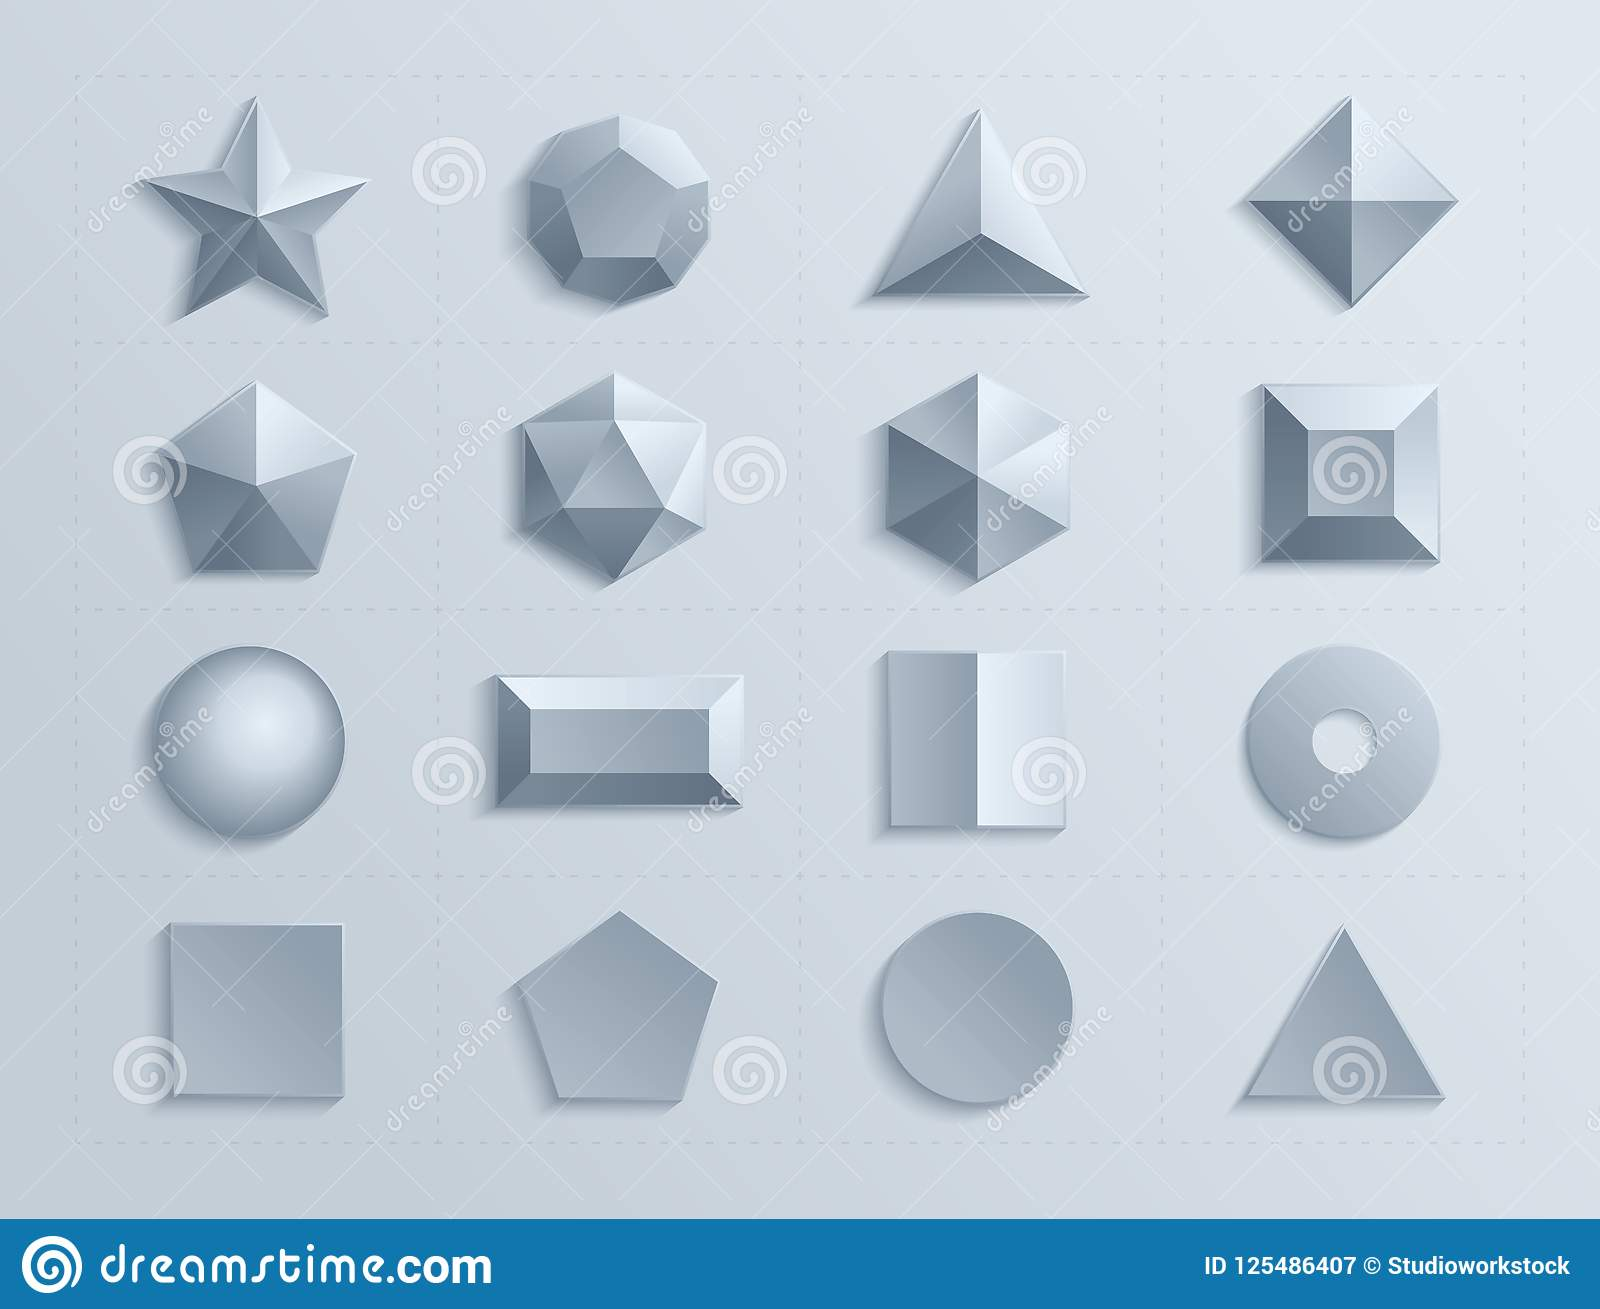 3d shapes template realistic stock vector illustration of cuboid